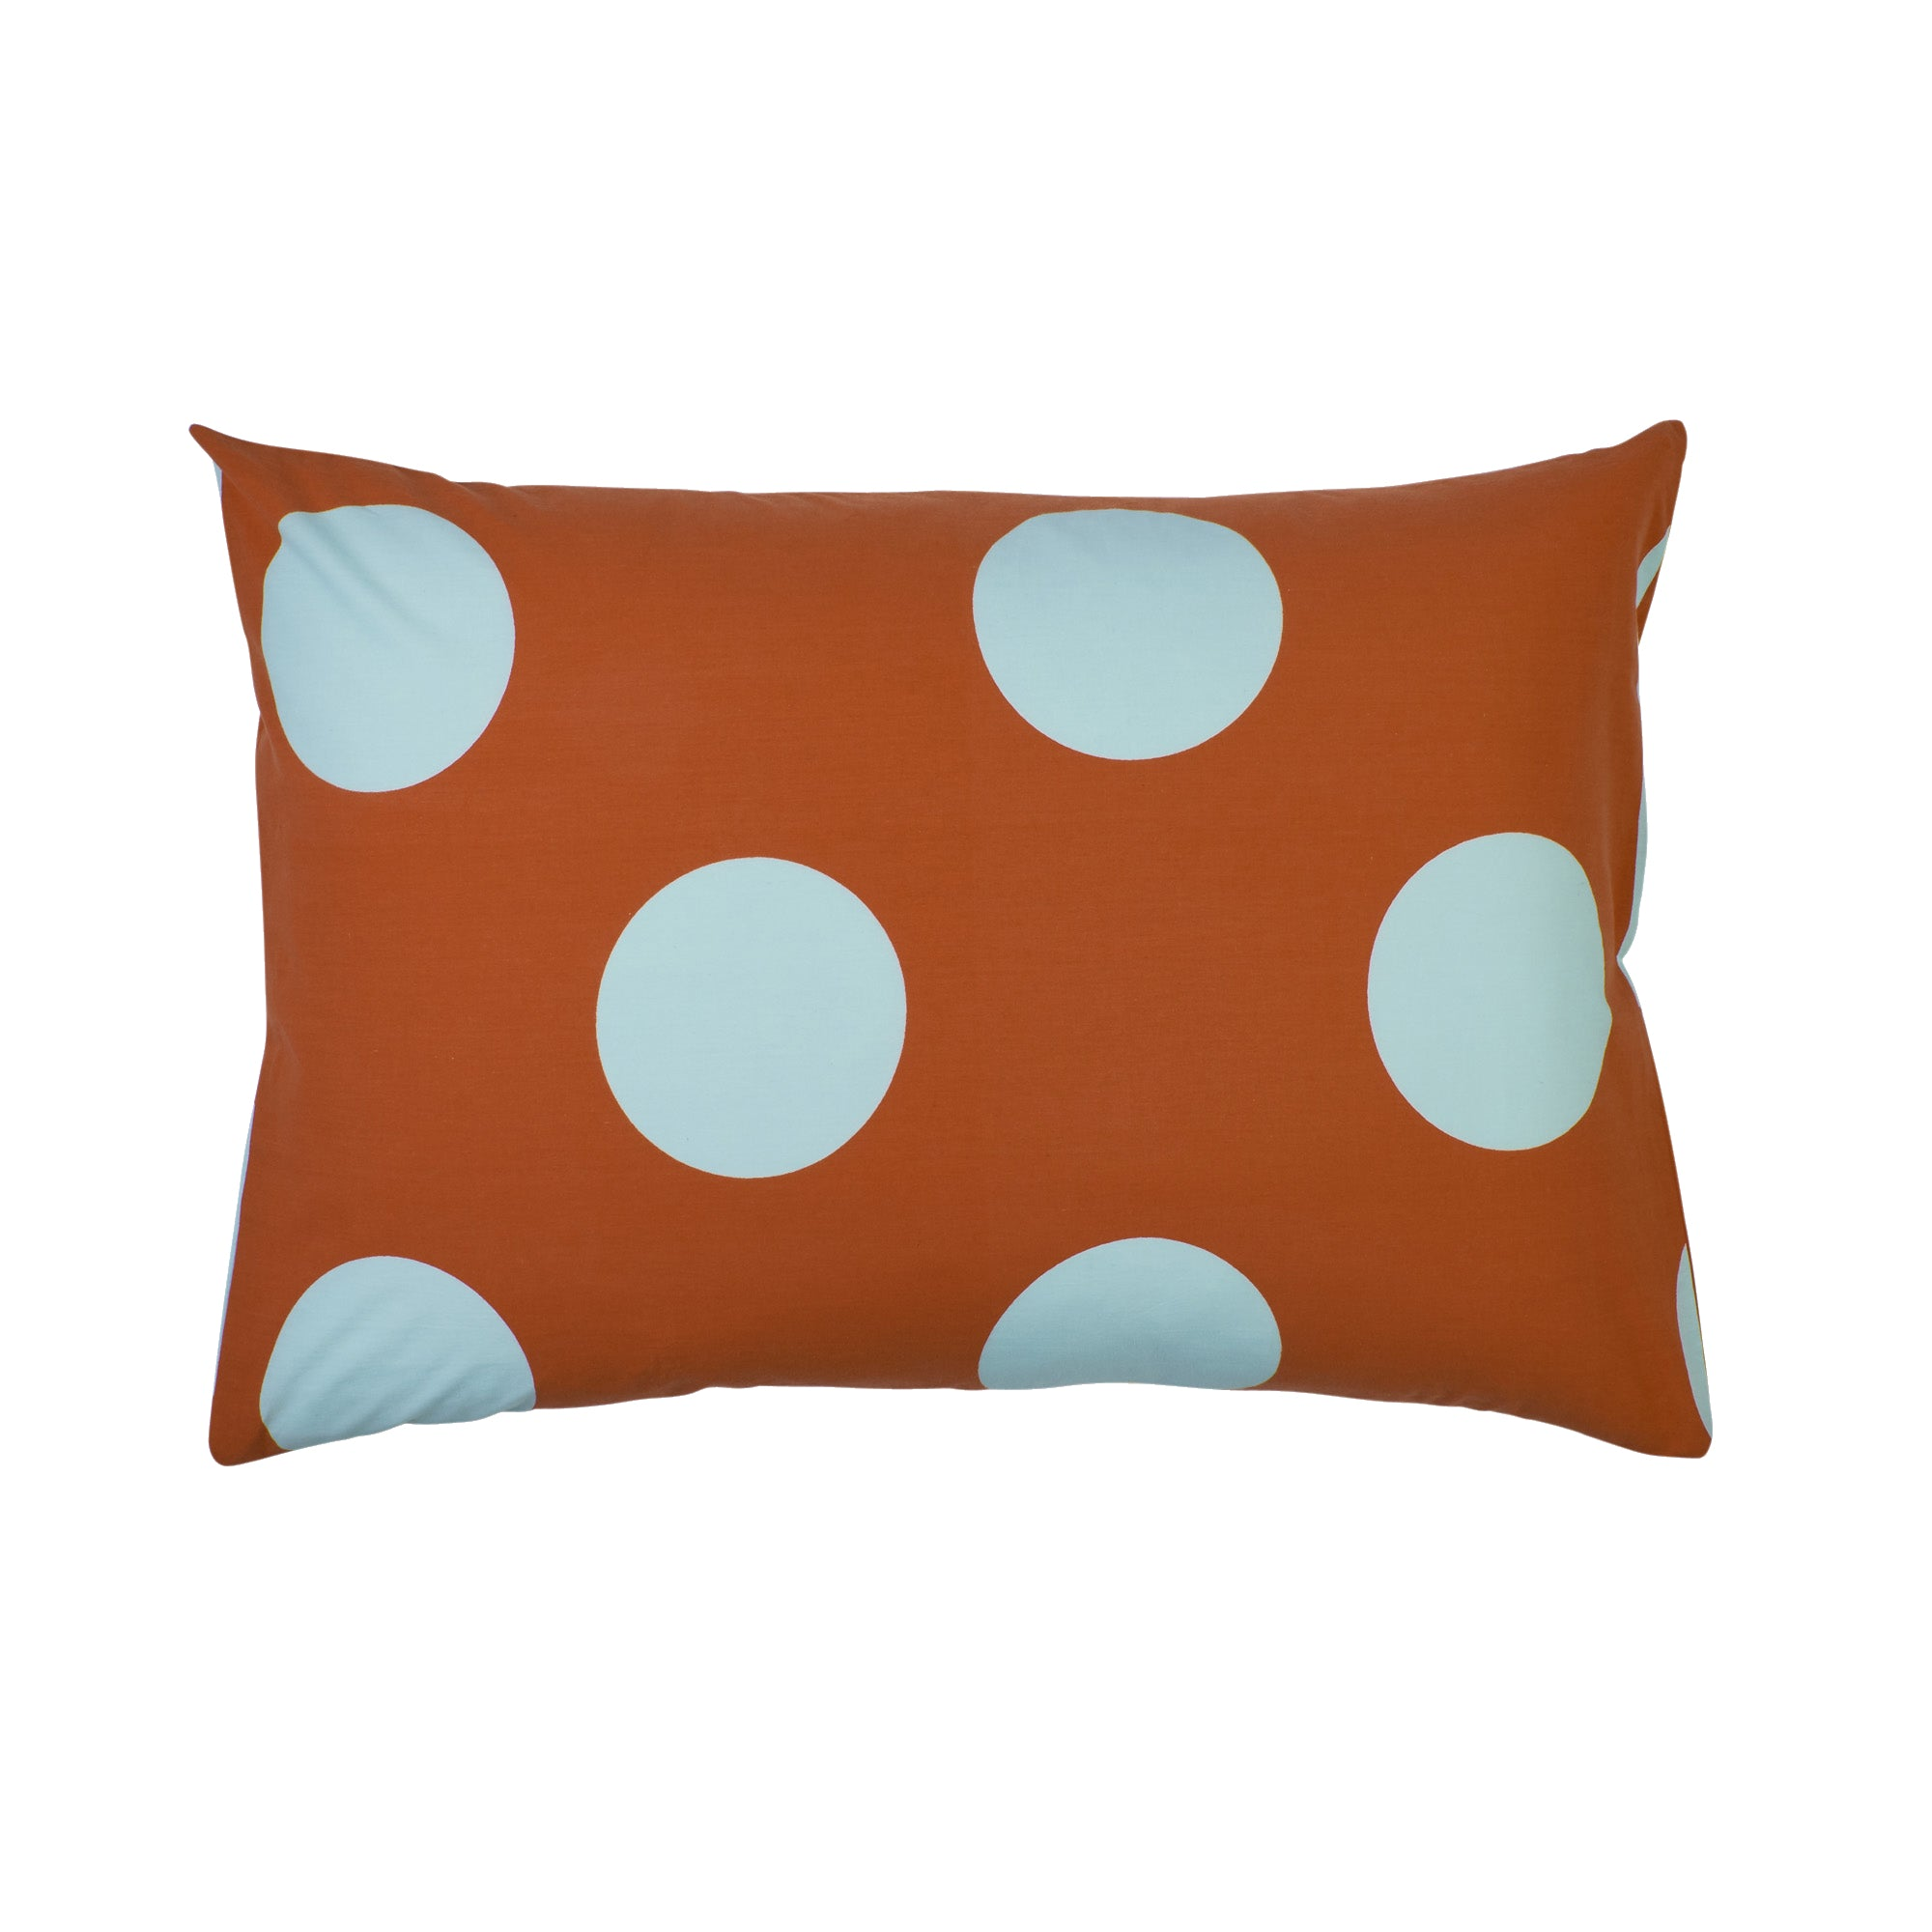 hand printed large polka dot standard cotton kids pillowcase